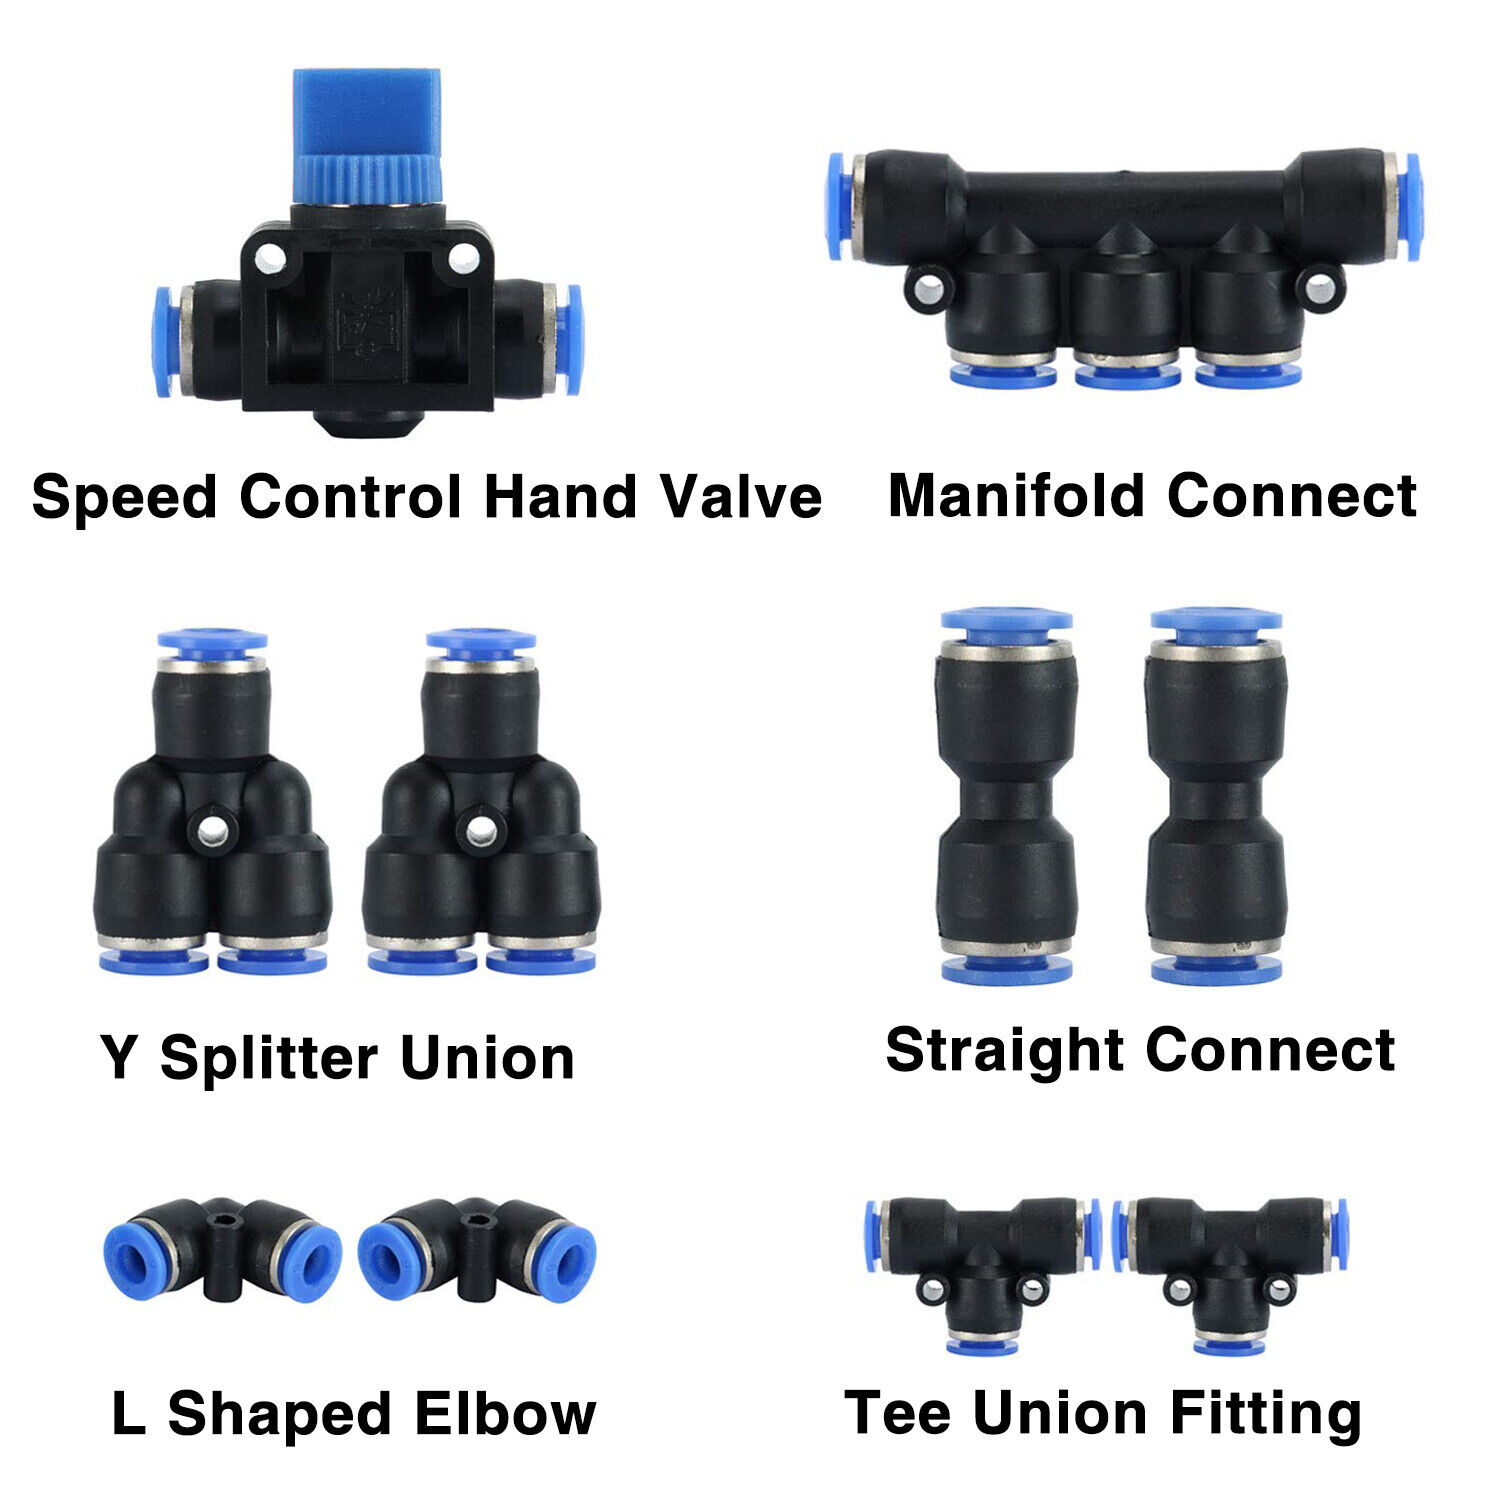 DERNORD 10 Pack Plastic Push to Connect Fittings Tube Connect 4 Mm to 4 Mm Push Fit Fittings Tube Fittings Push Lock Quick Connect Fittings 4mm Or 5//32 OD